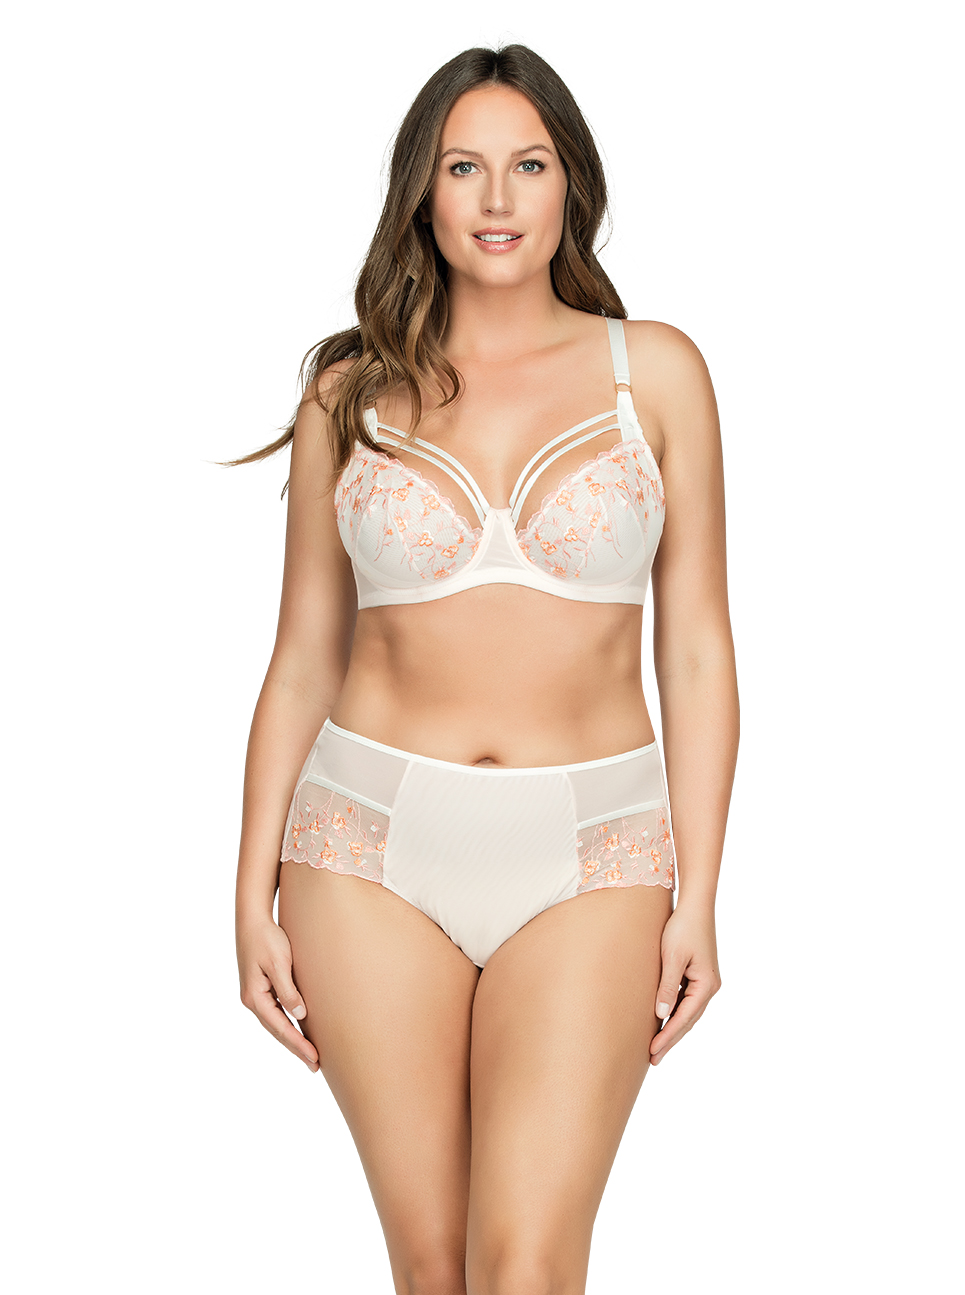 PARFAIT Briana UnlineWireBraP5672 HighwaistedBriefP5675 PetalPinkFloral Front1 - Briana Unlined Wire Bra Petal Pink w Floral P5672